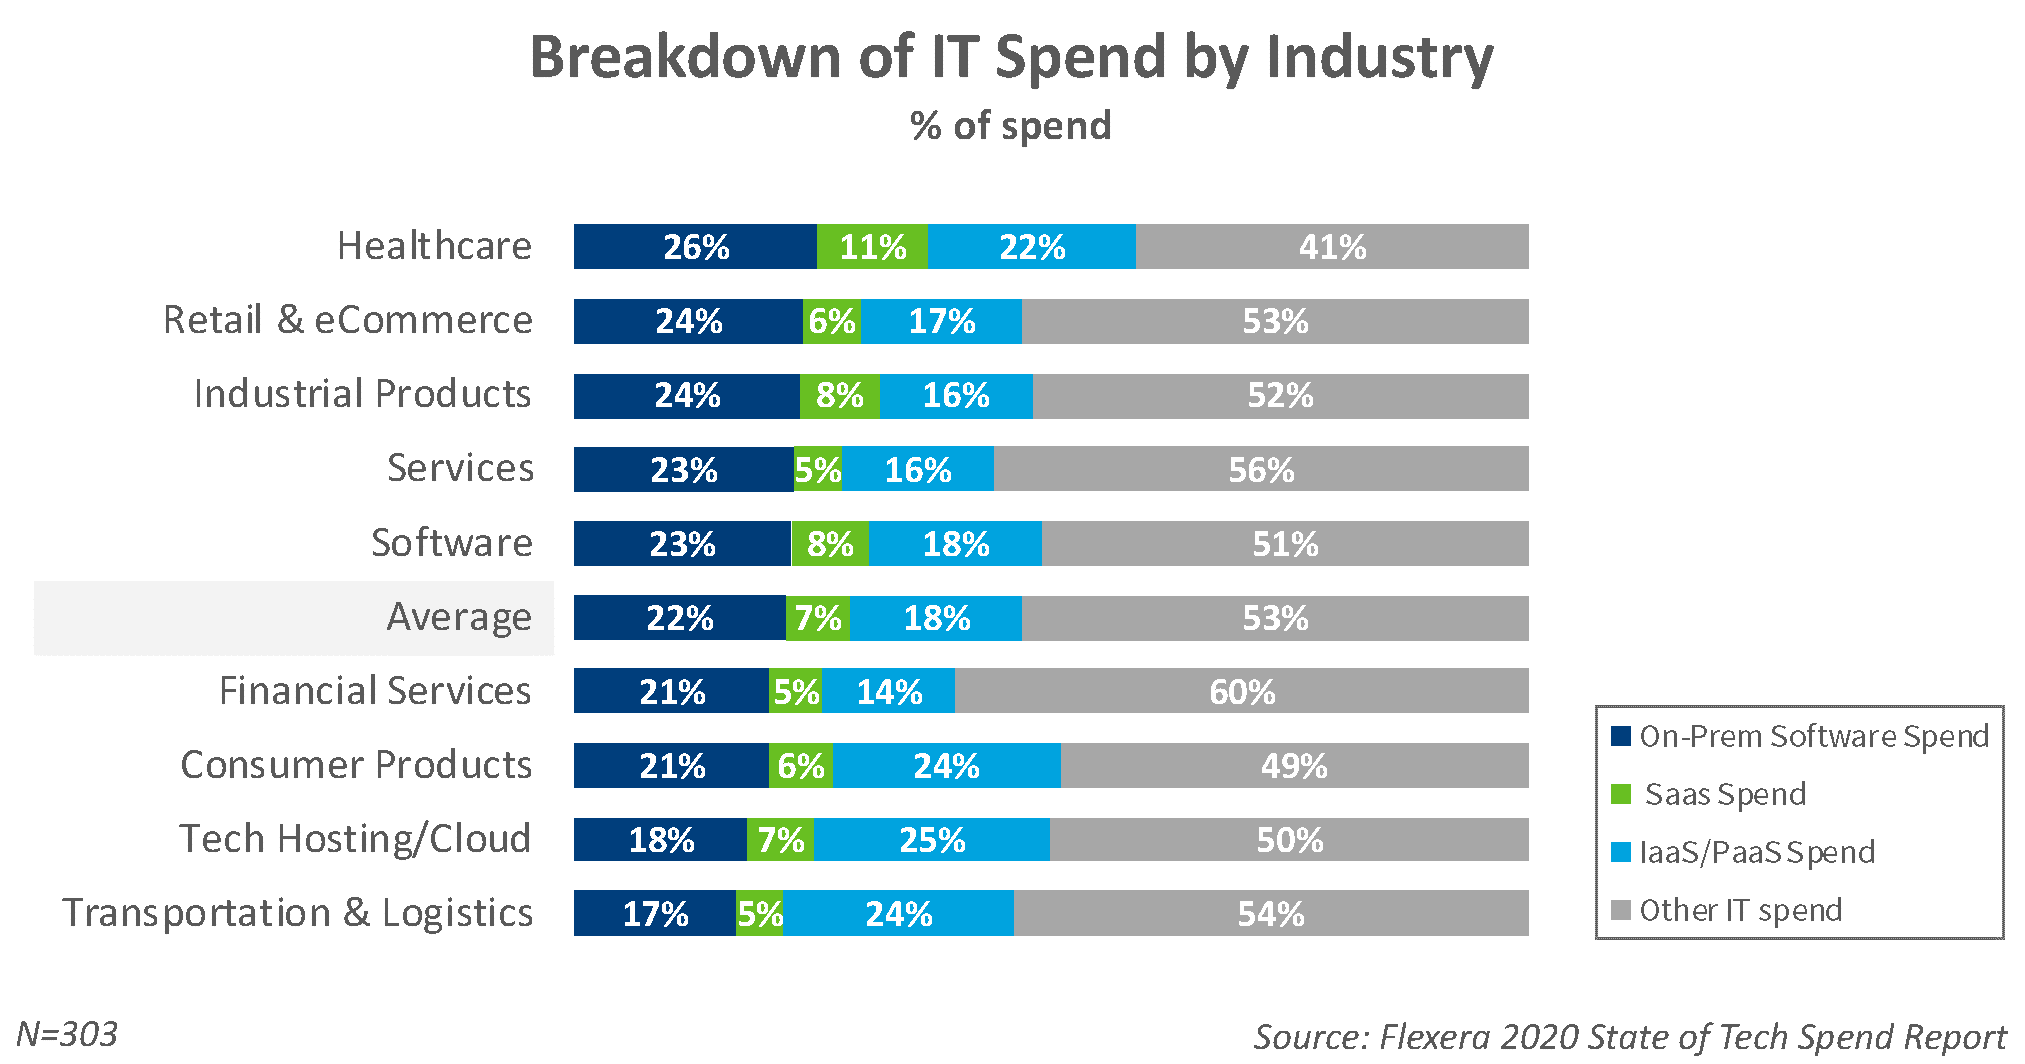 SOFTWARE, SAAS, AND CLOUD SPENDING BY INDUSTRY